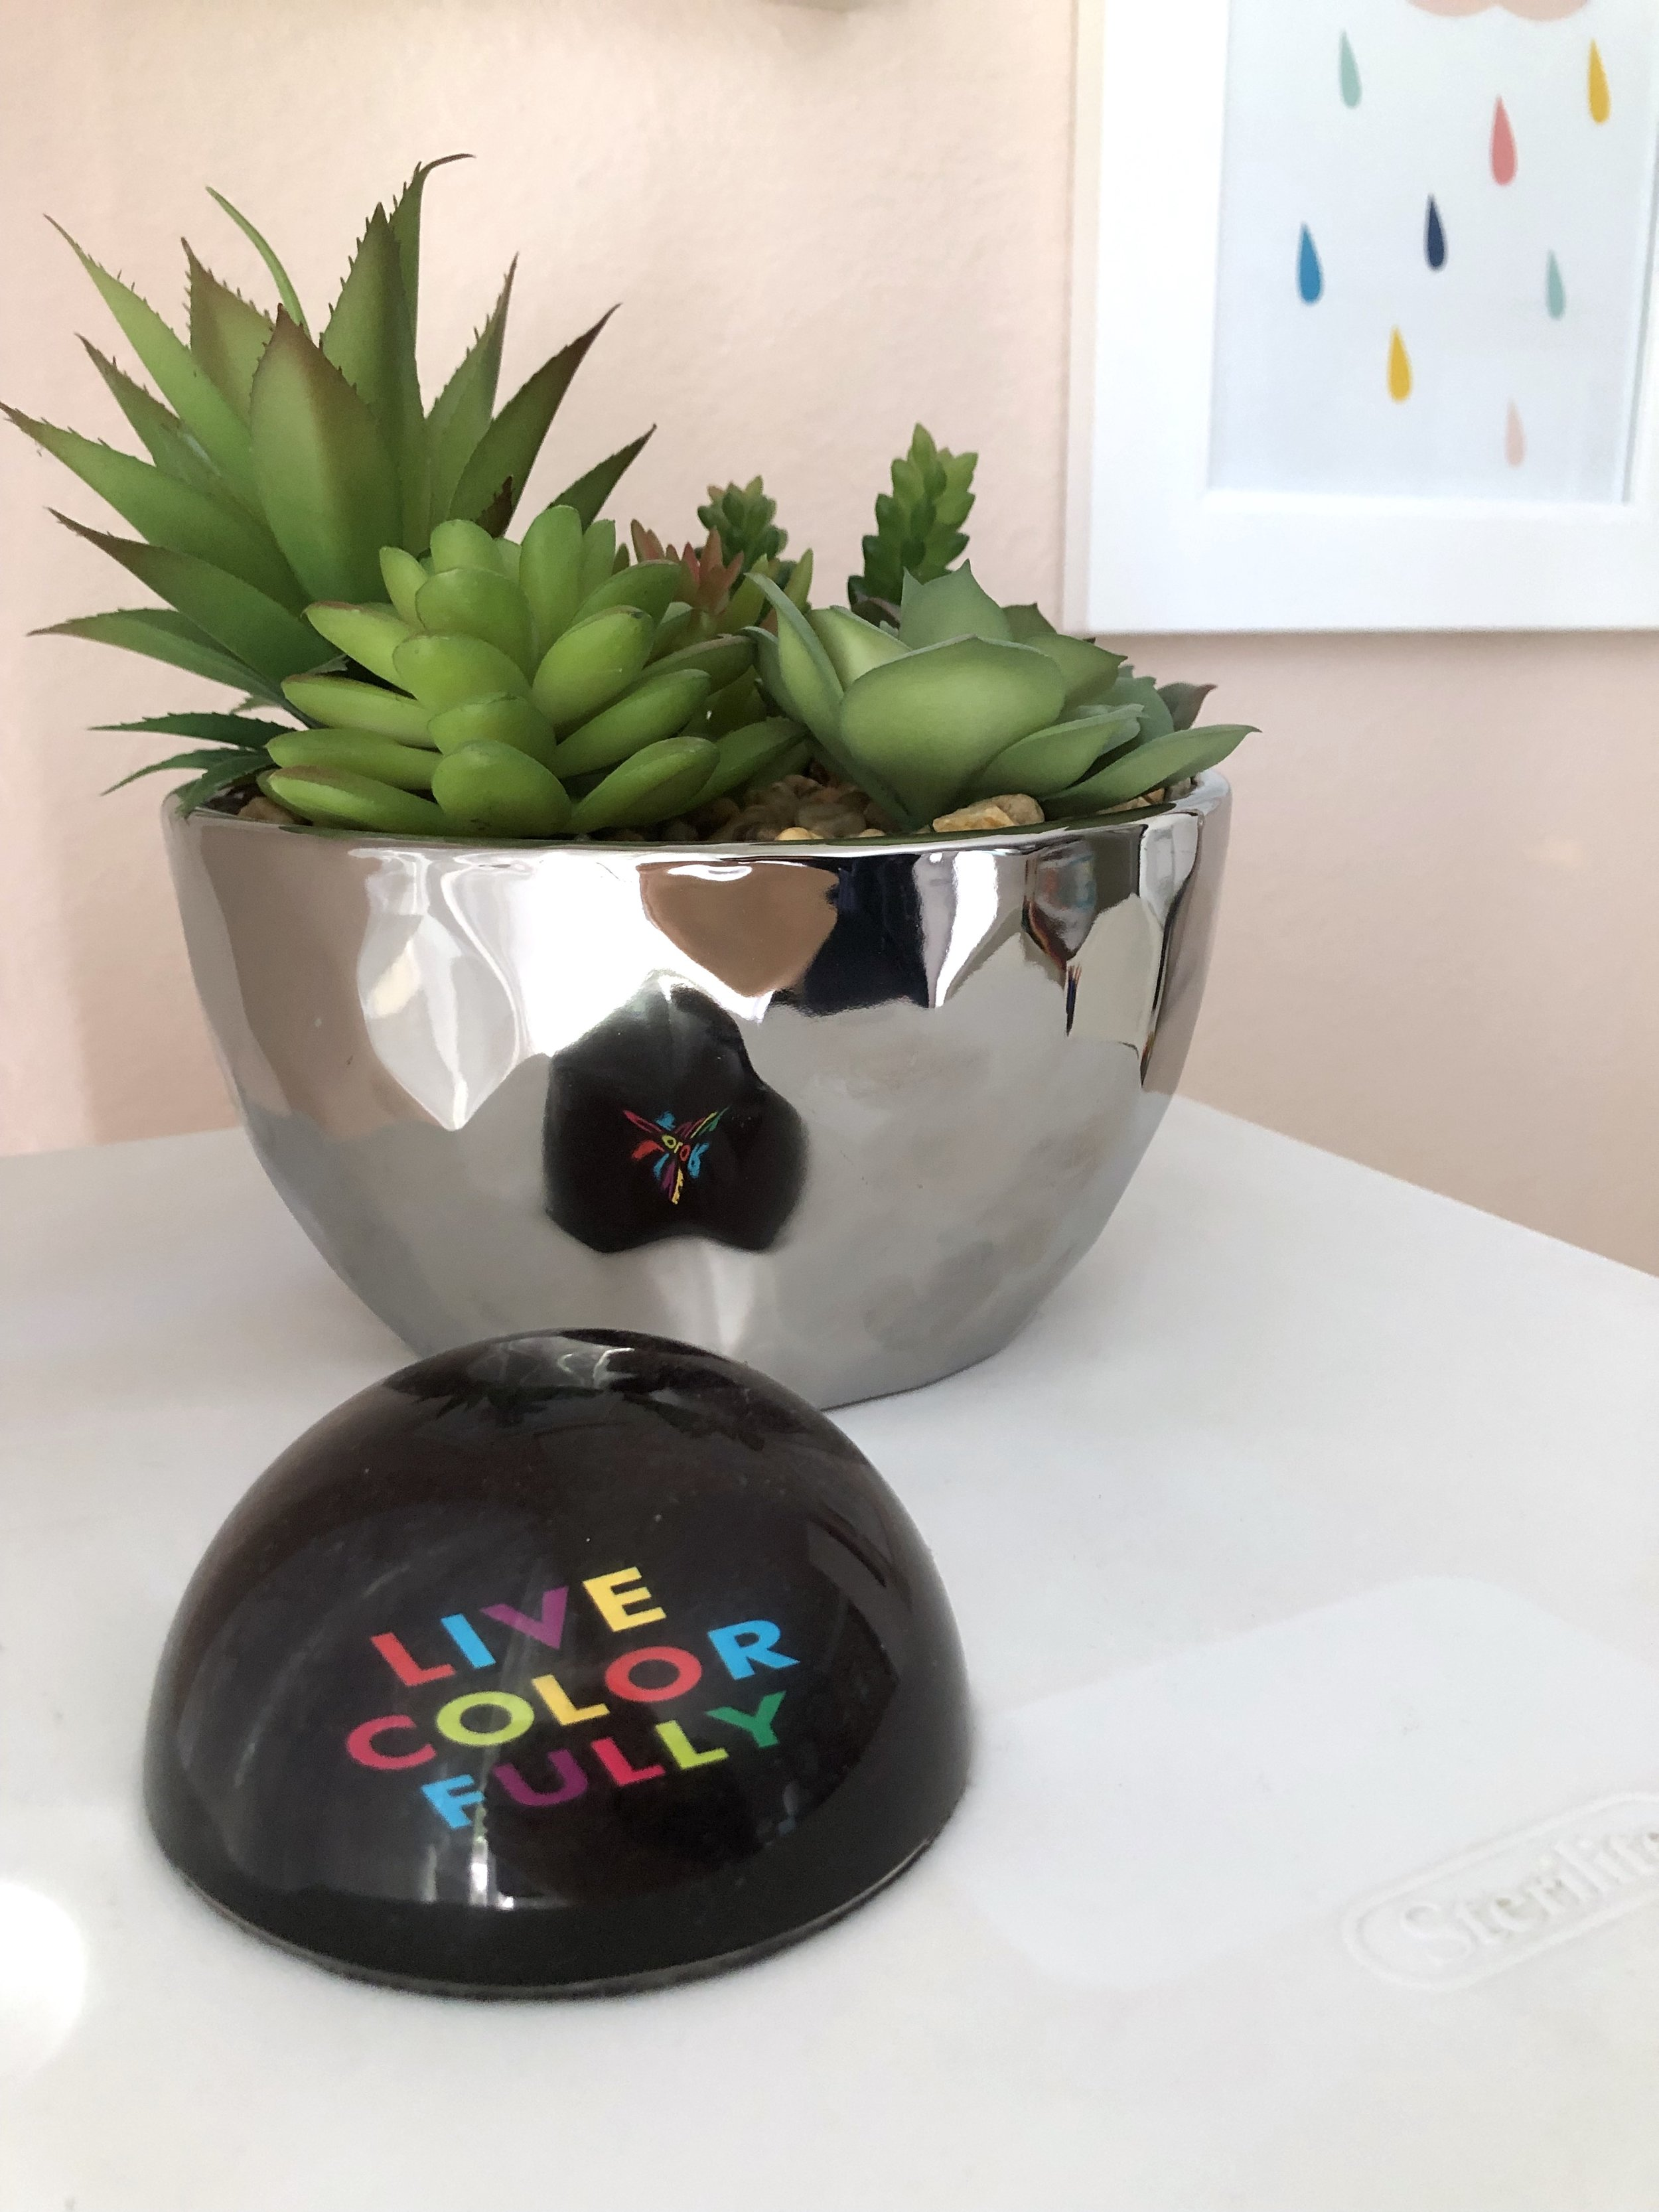 The Kate spade paper weight was a gift from my mom when i was in design school, and this succulent planter adds a nice does of greenery